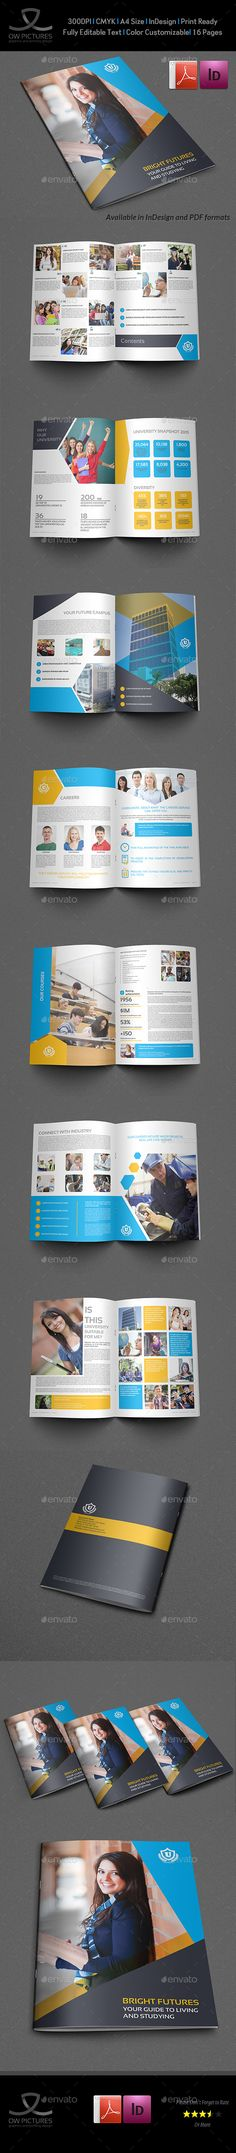 University - College Brochure Template - 16 Pages - InDesign Template • Only available here ➝ http://graphicriver.net/item/university-college-brochure-template-16-pages/16883151?ref=pxcr